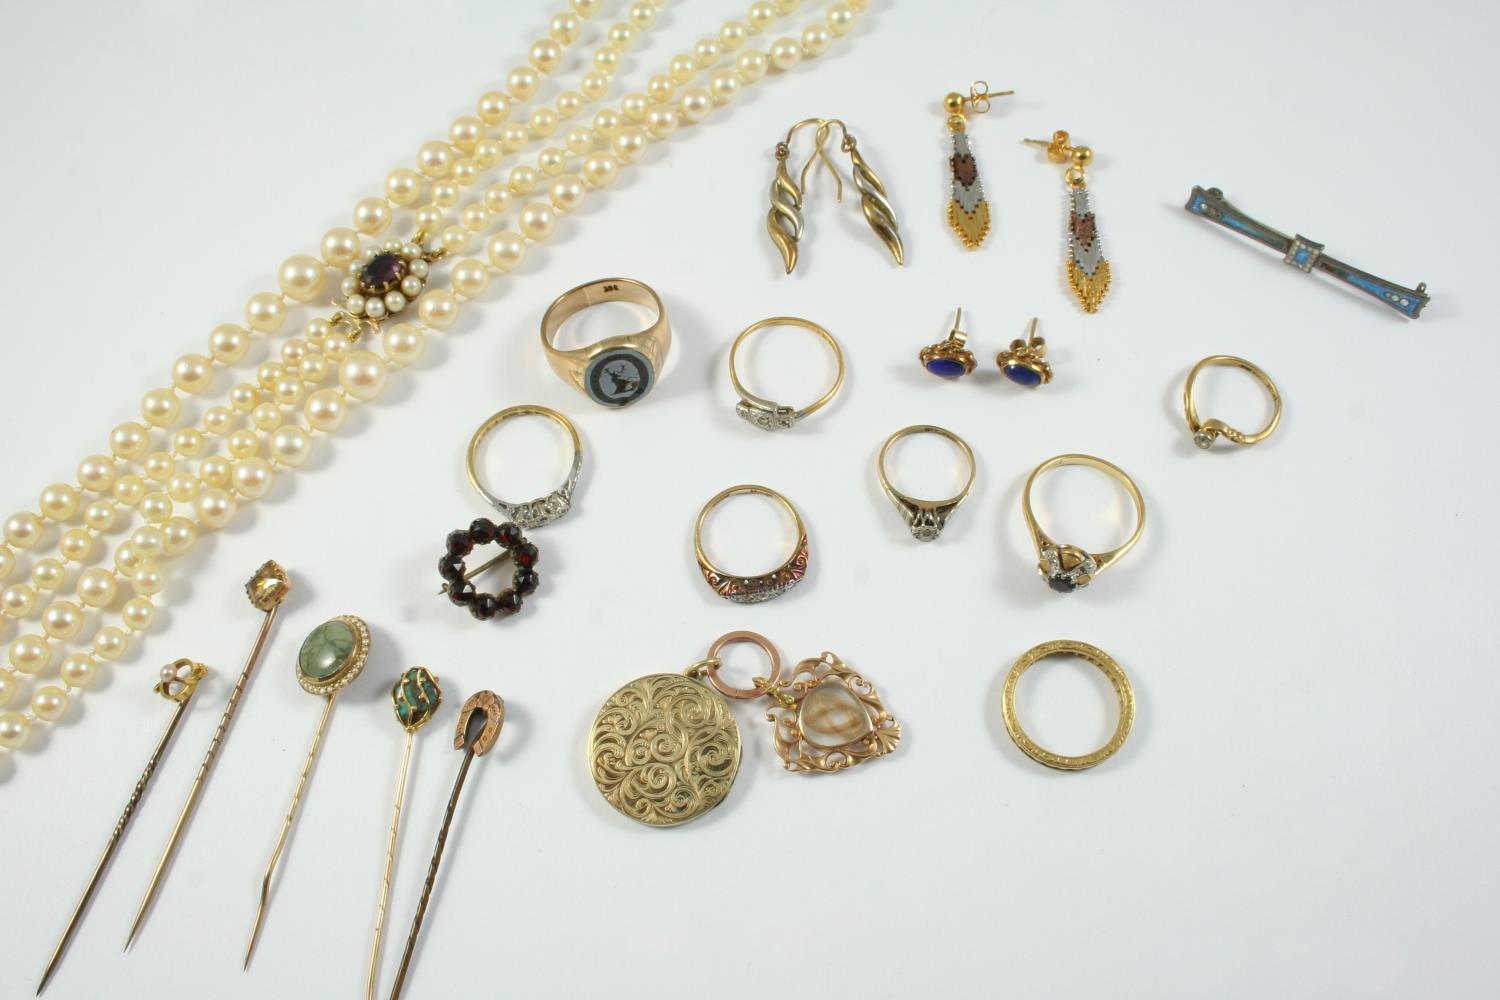 A QUANTITY OF JEWELLERY including a sapphire and diamond ring, set in 18ct gold, a diamond three